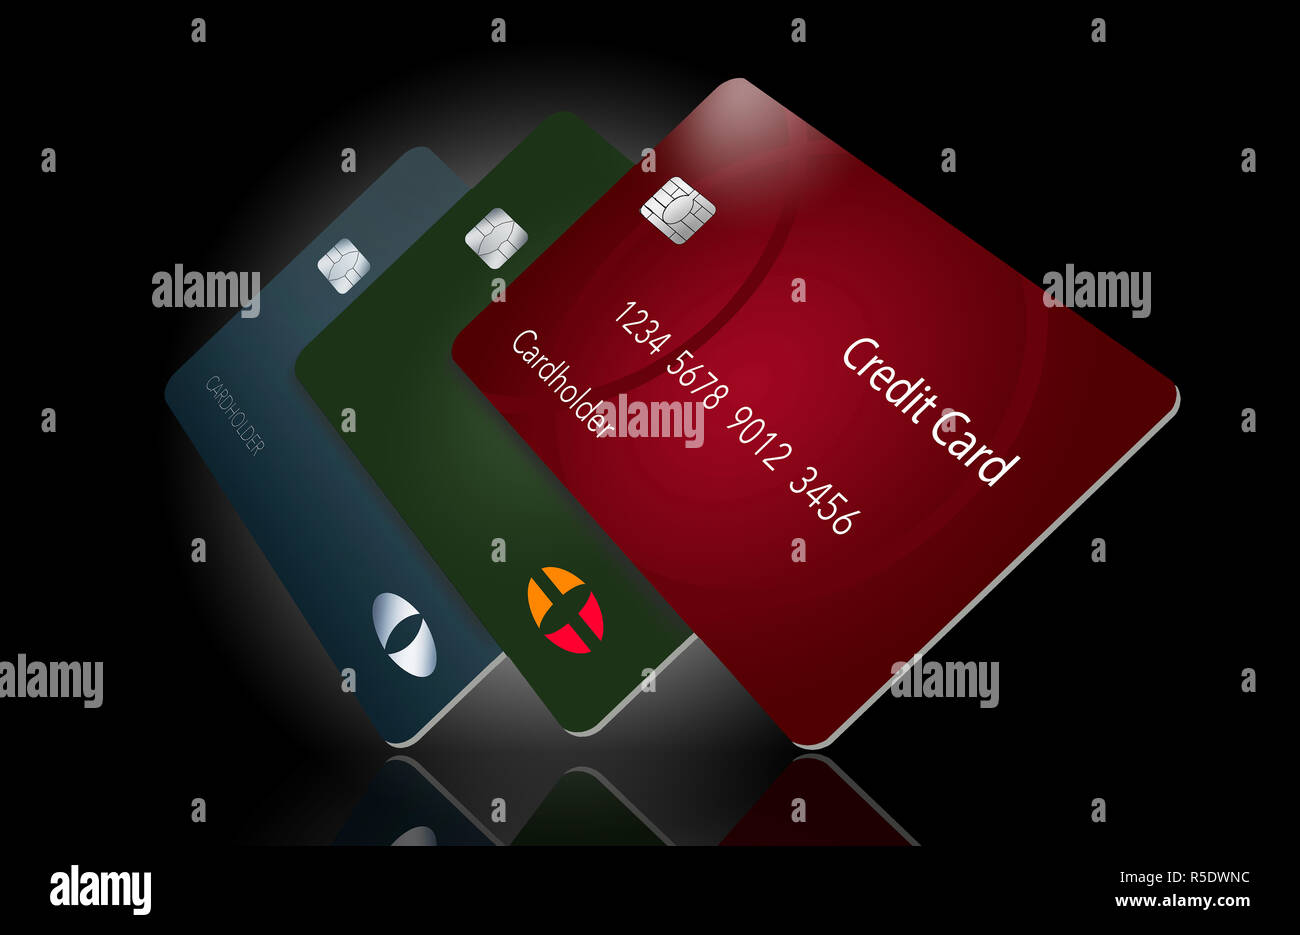 Three credit cards cast their shadow in this 3-D illustration of cards hovering over a white surface making a dramatic view of ordinary cards. - Stock Image